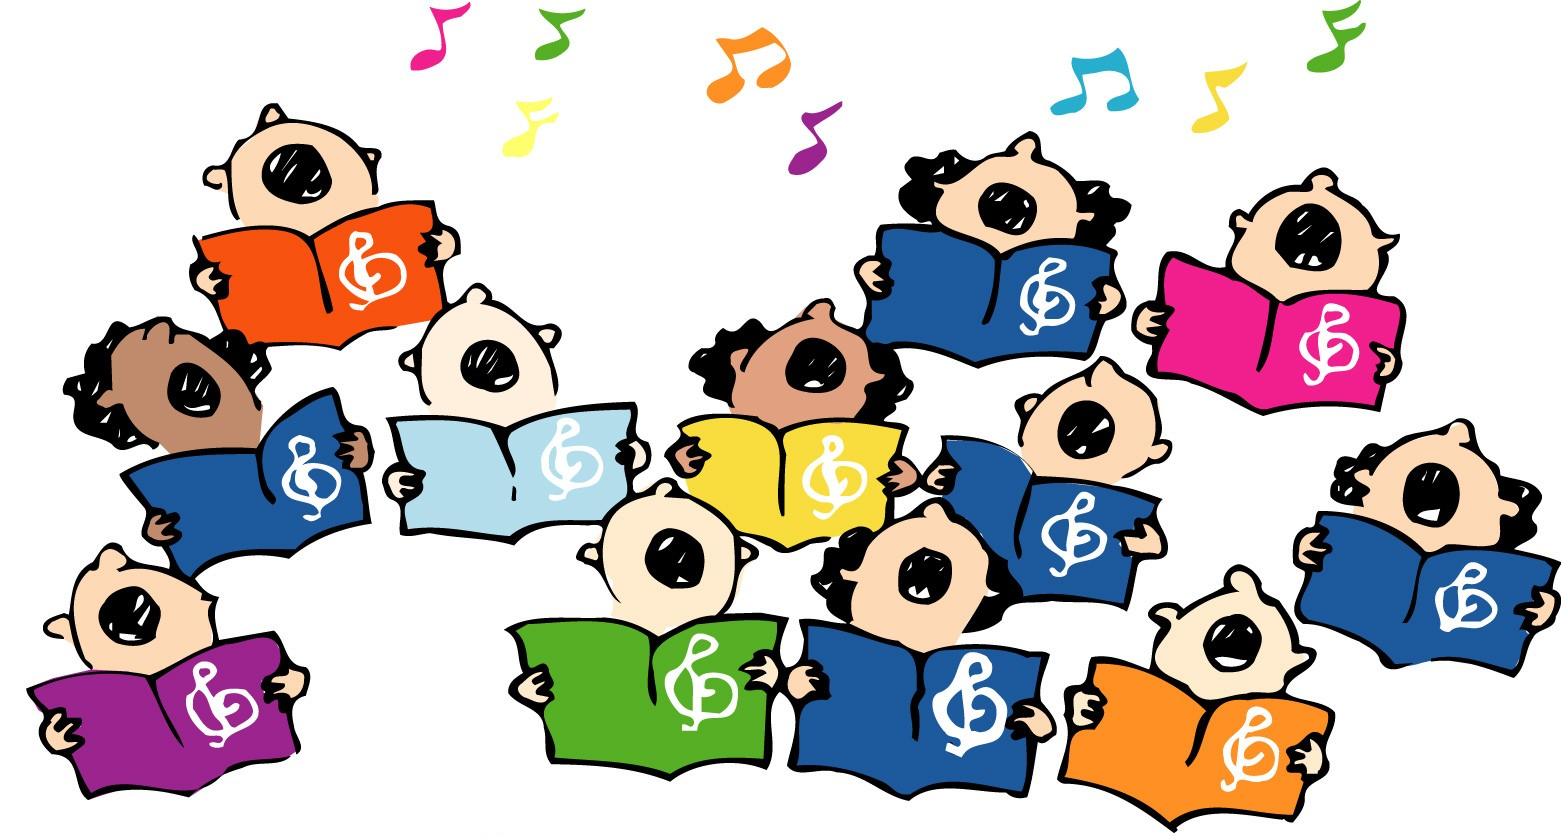 Church sing clipart image library library Free Choir Singers Cliparts, Download Free Clip Art, Free Clip Art ... image library library